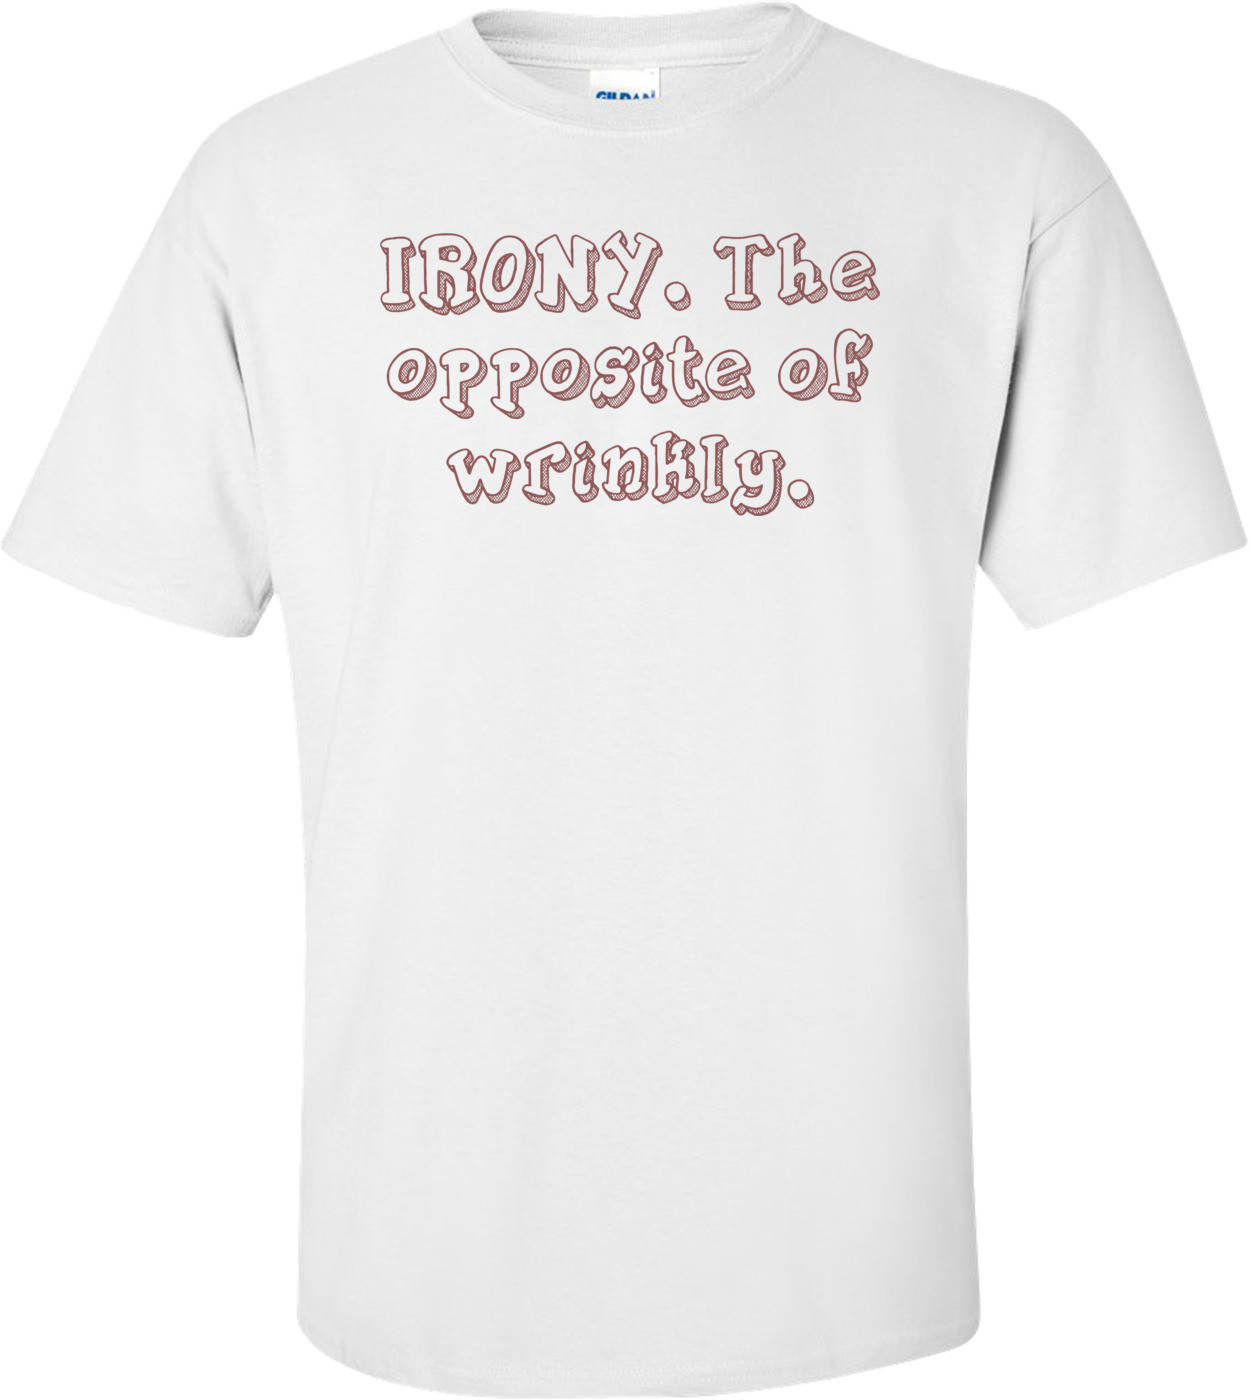 IRONY. The opposite of wrinkly. Shirt